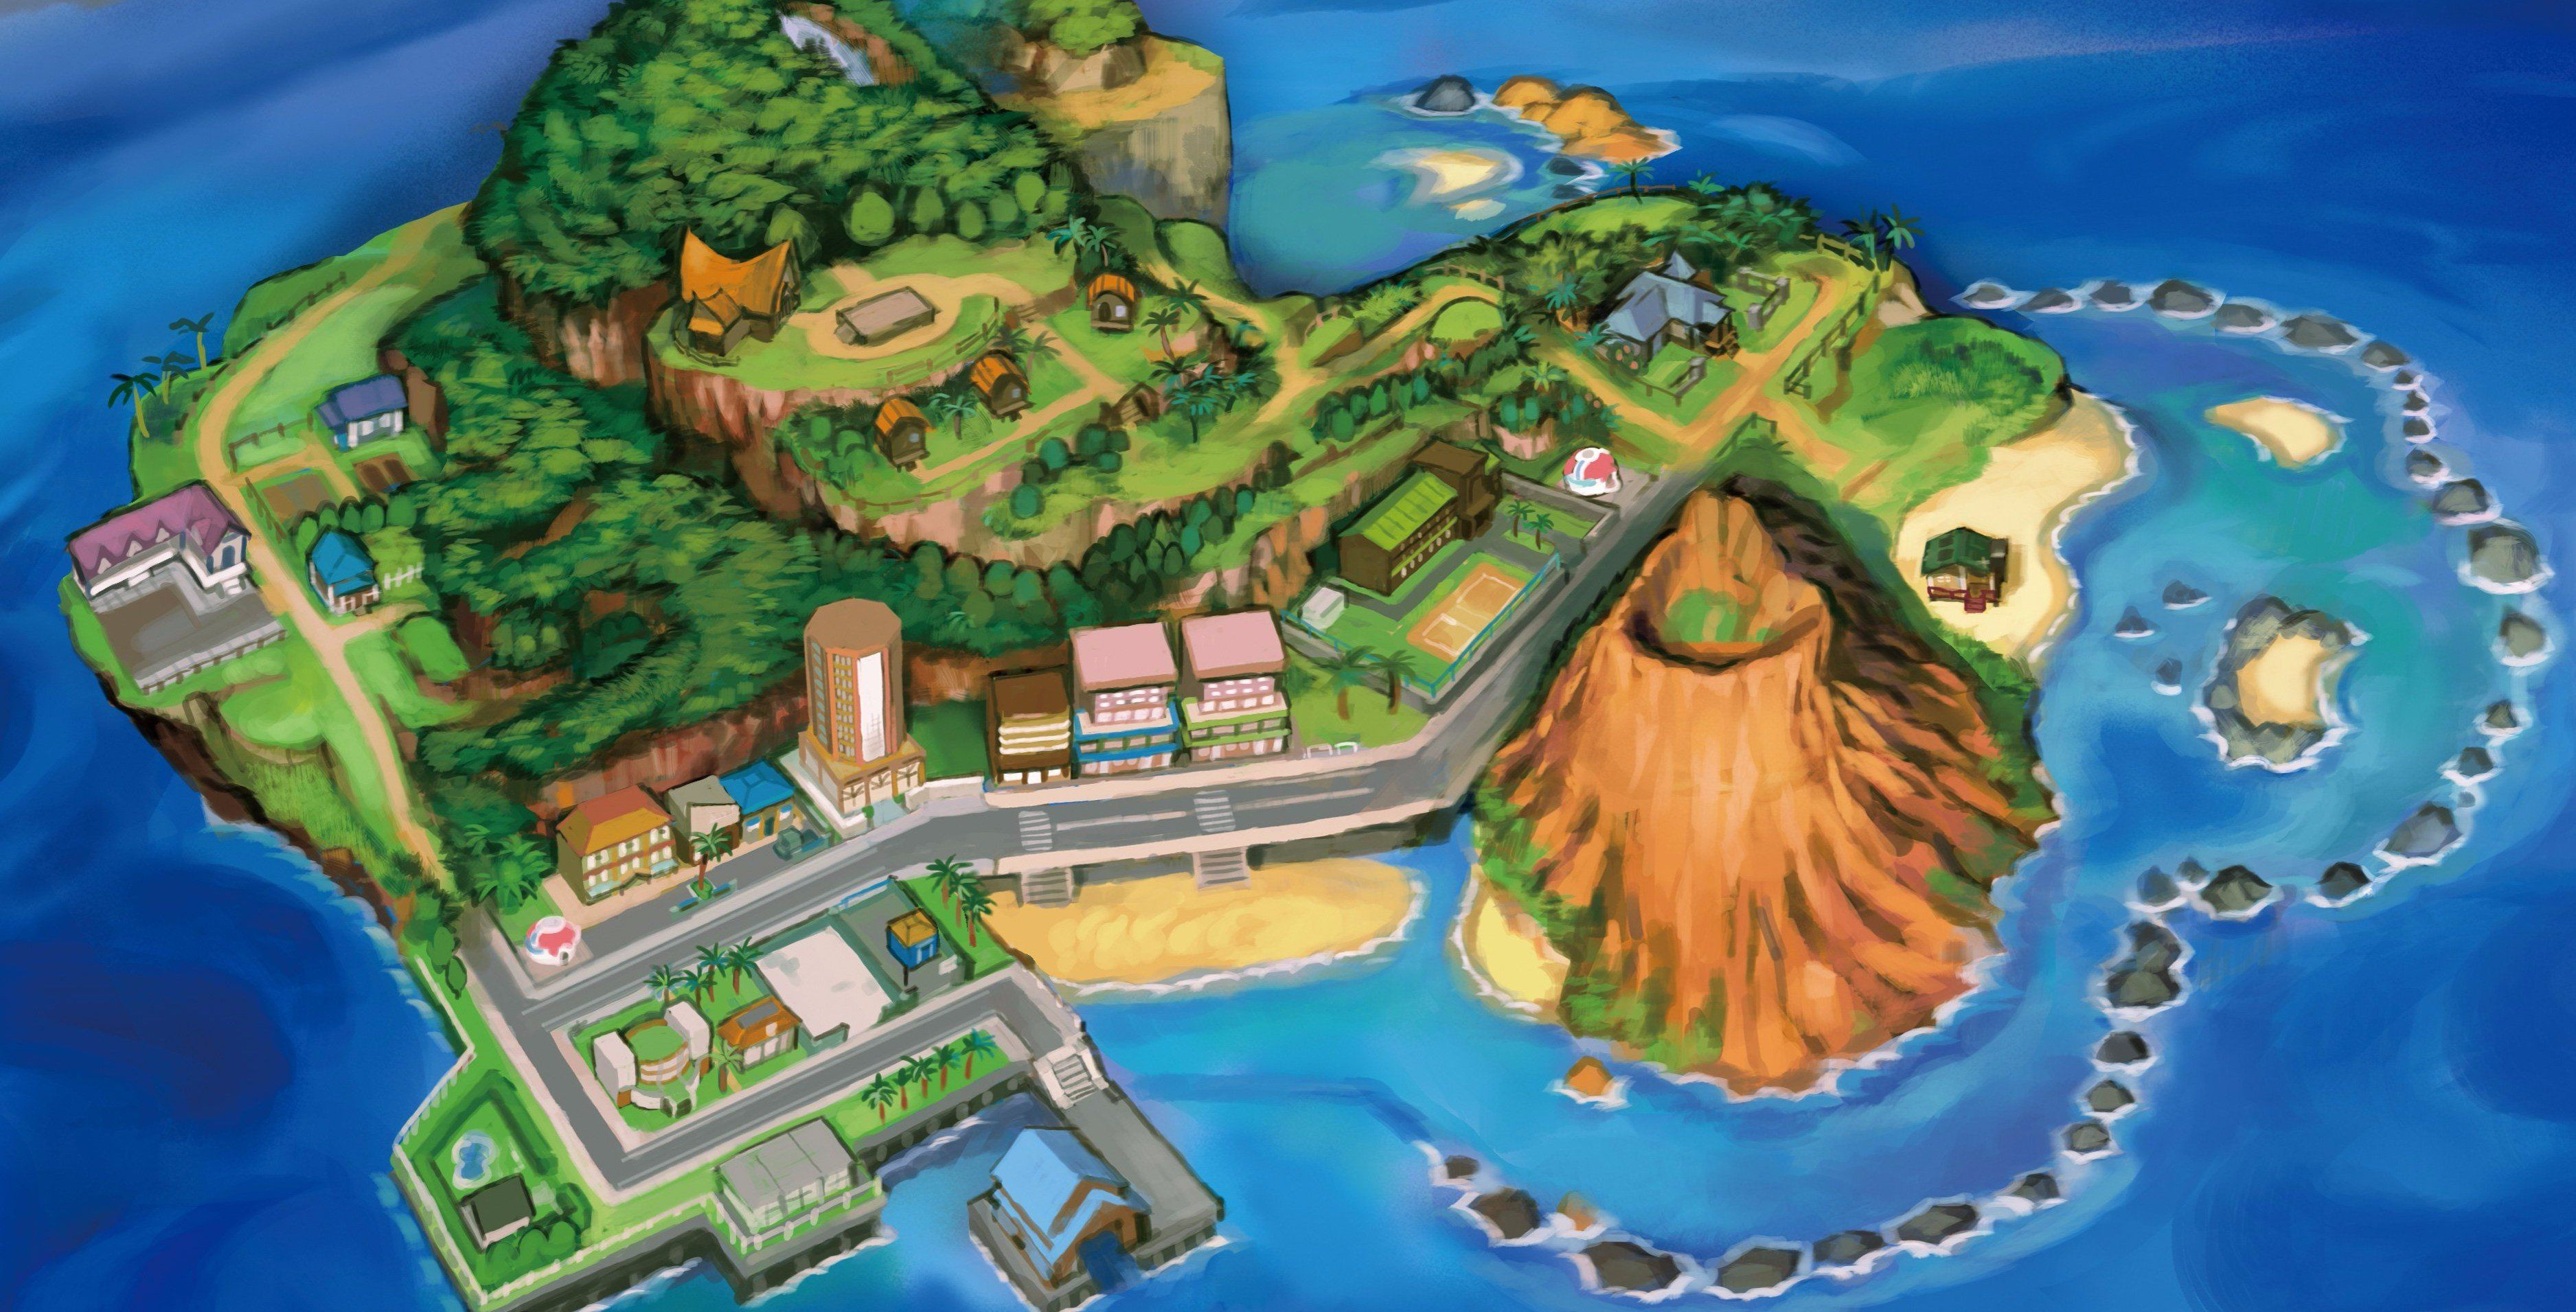 pin by kopskyz ref on the art of pokemon sun moon pinterest